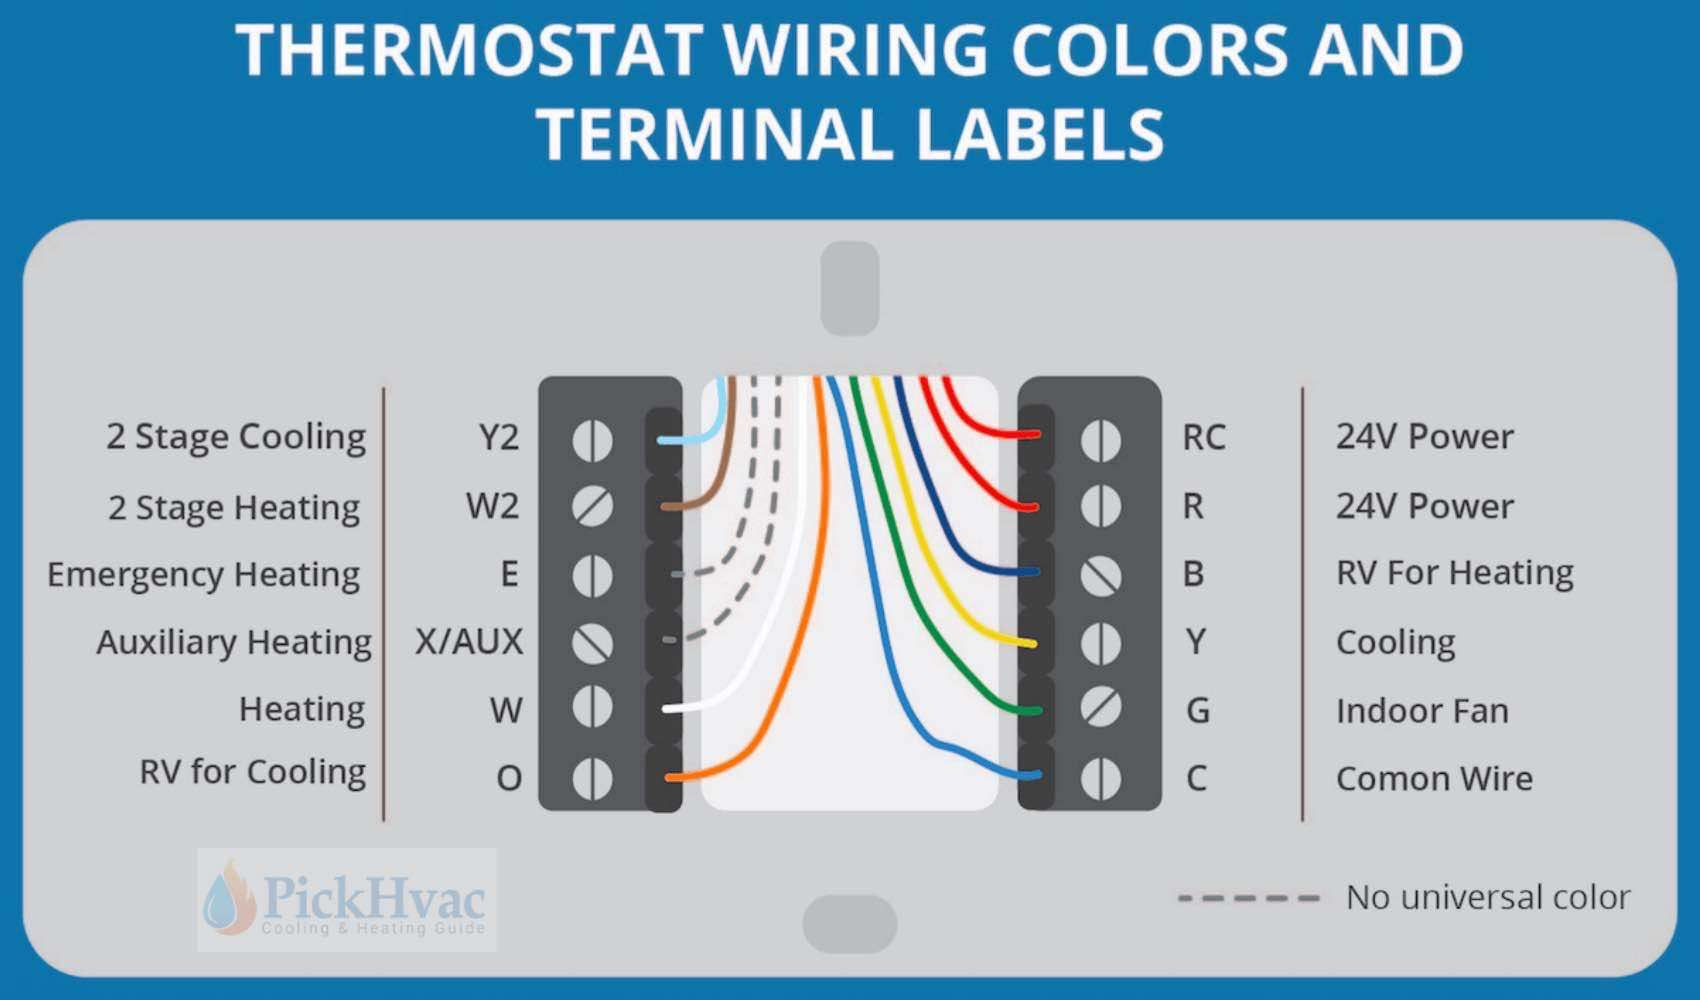 thermostat wiring colors to labels | thermostat wiring, hvac thermostat,  heating thermostat  pinterest